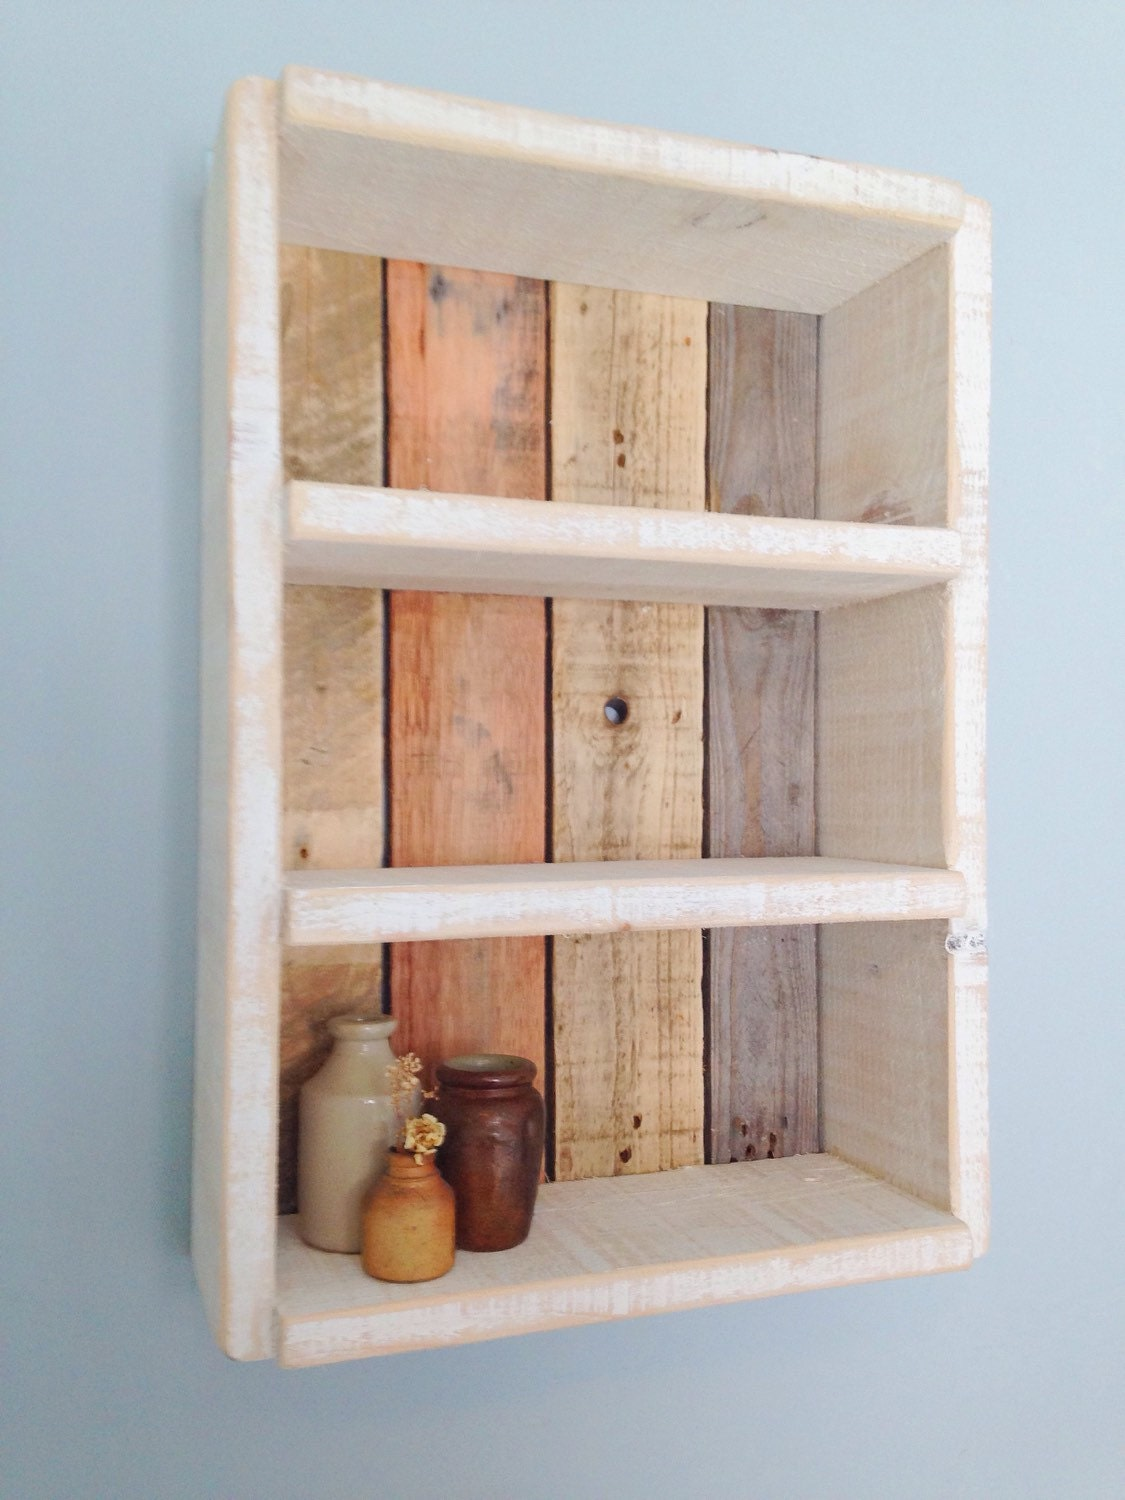 Marvelous photograph of Rustic Wood Shelves Local Cornish Timber & by RemyDicksonDesigns with #915F3A color and 1125x1500 pixels